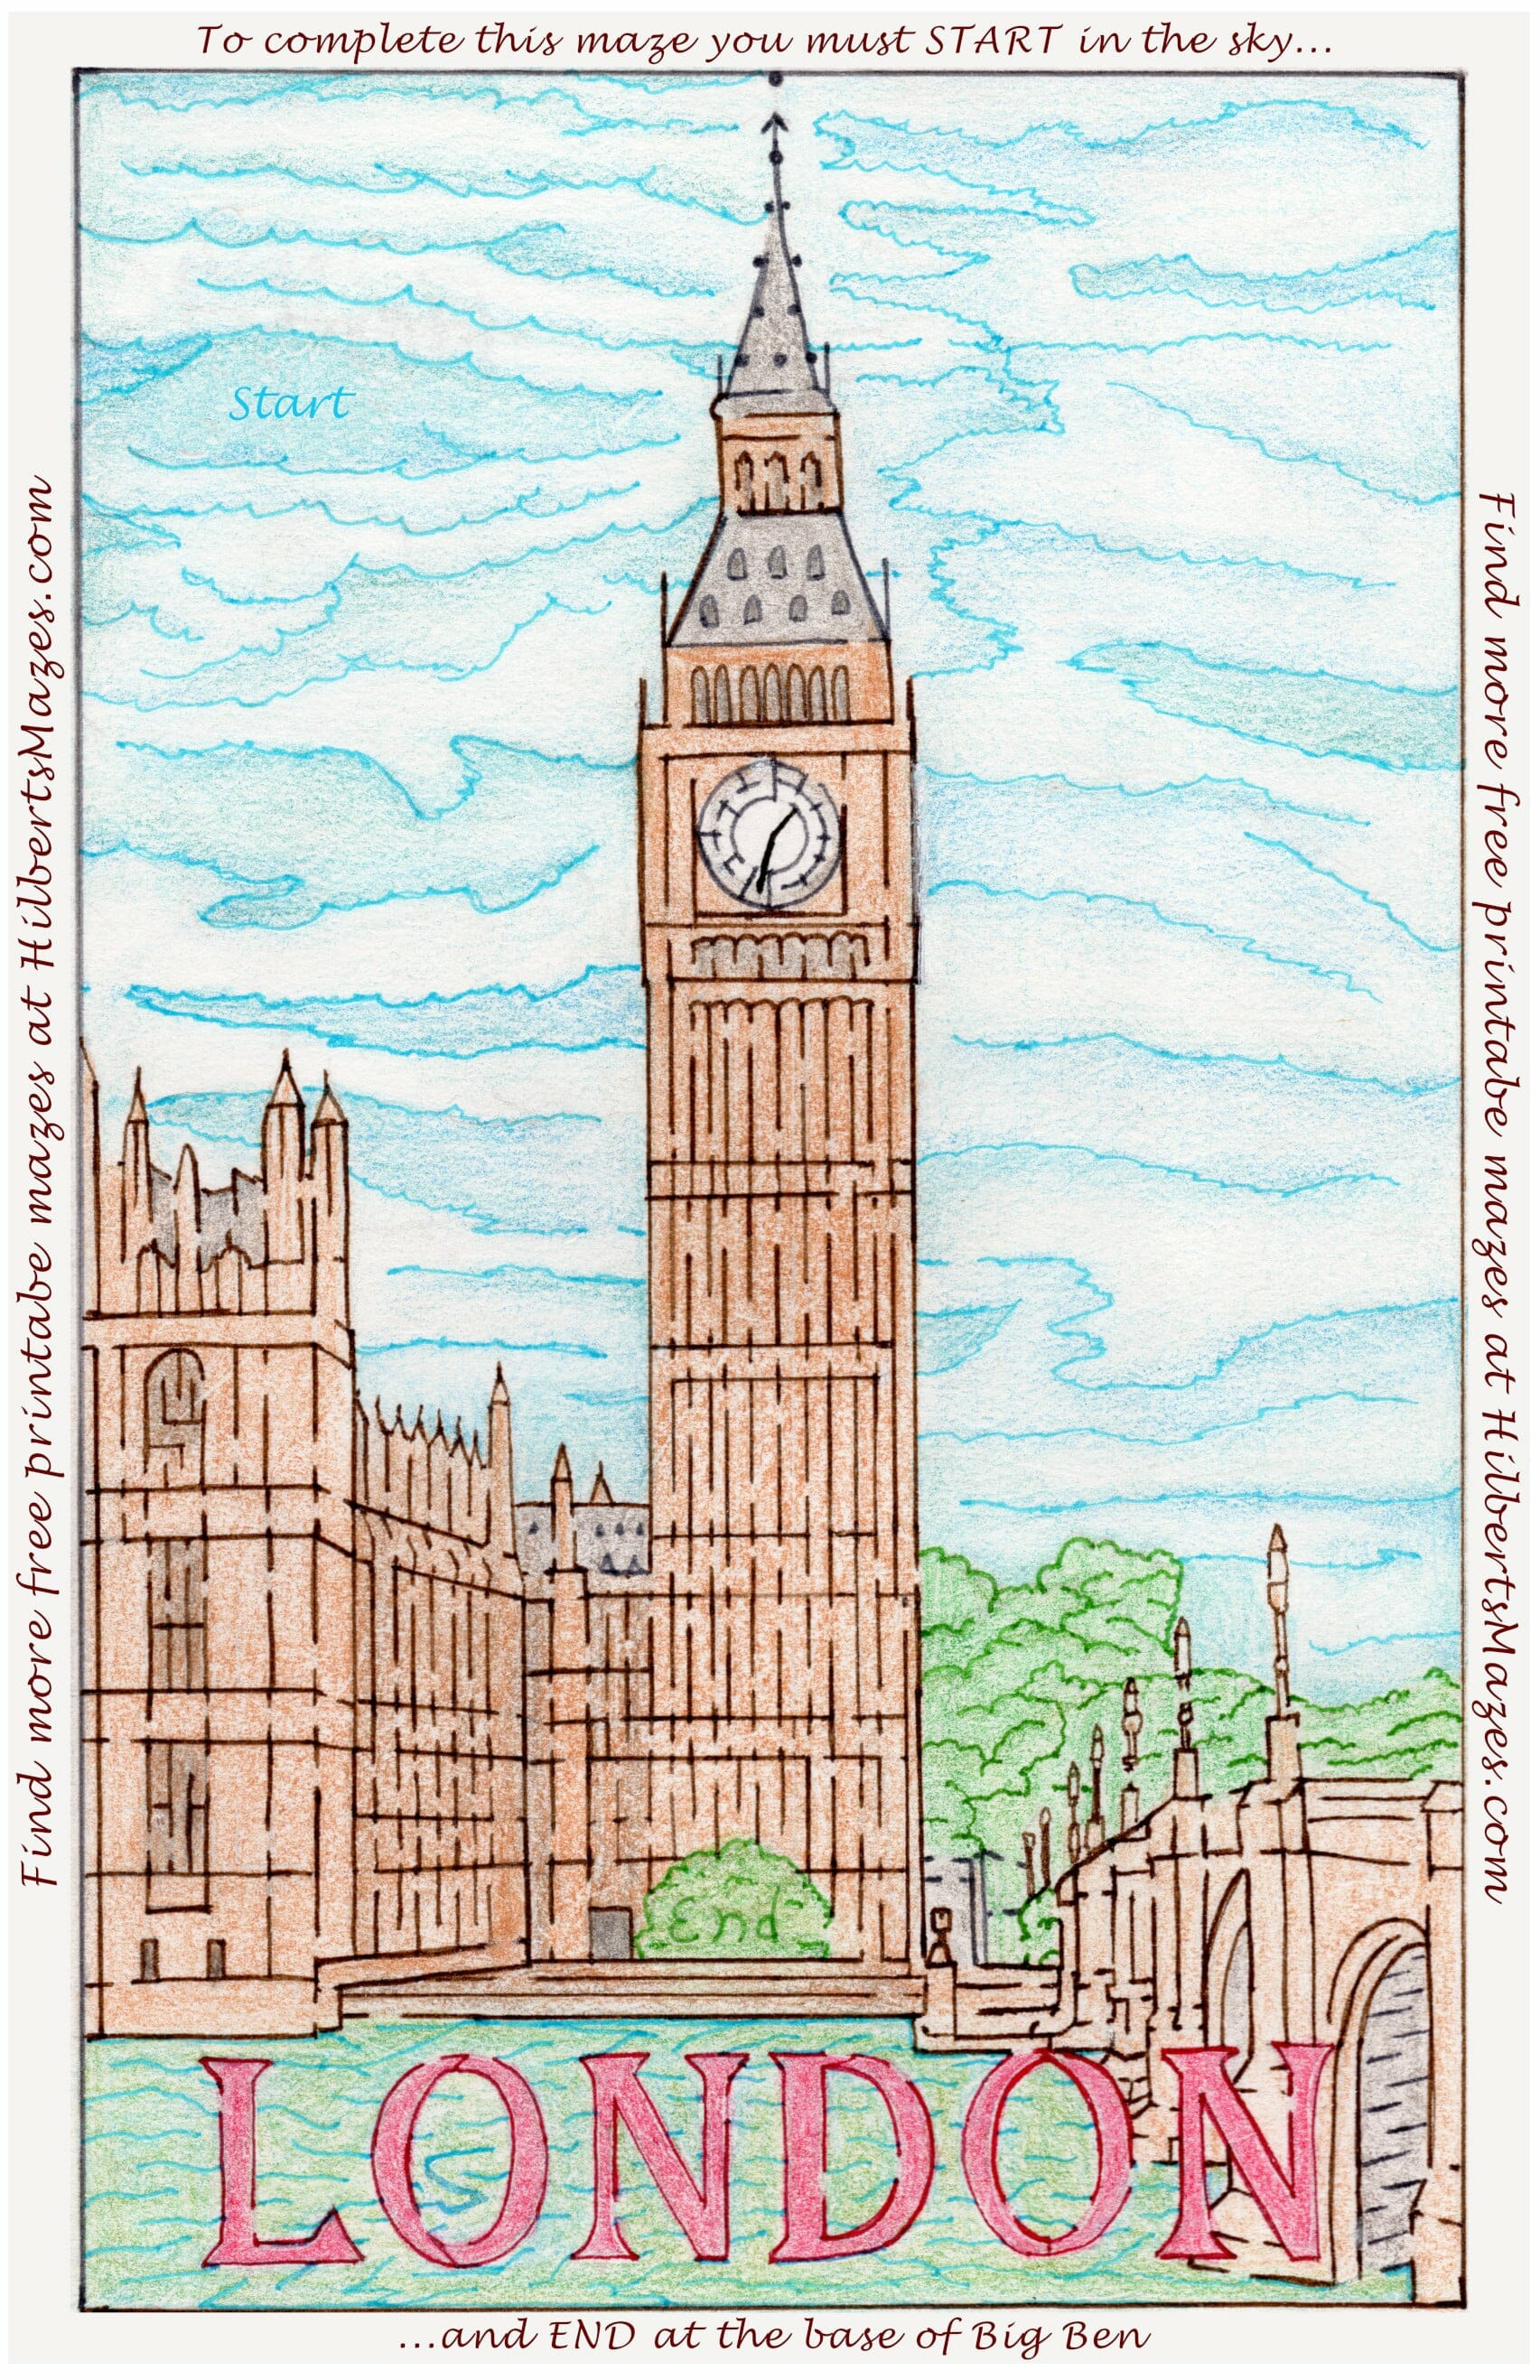 Free Printable Hand Drawn London Big Ben Maze. Easily downloadable printable PDF format. Great Mazes for both kids & adults very challenging but fun.